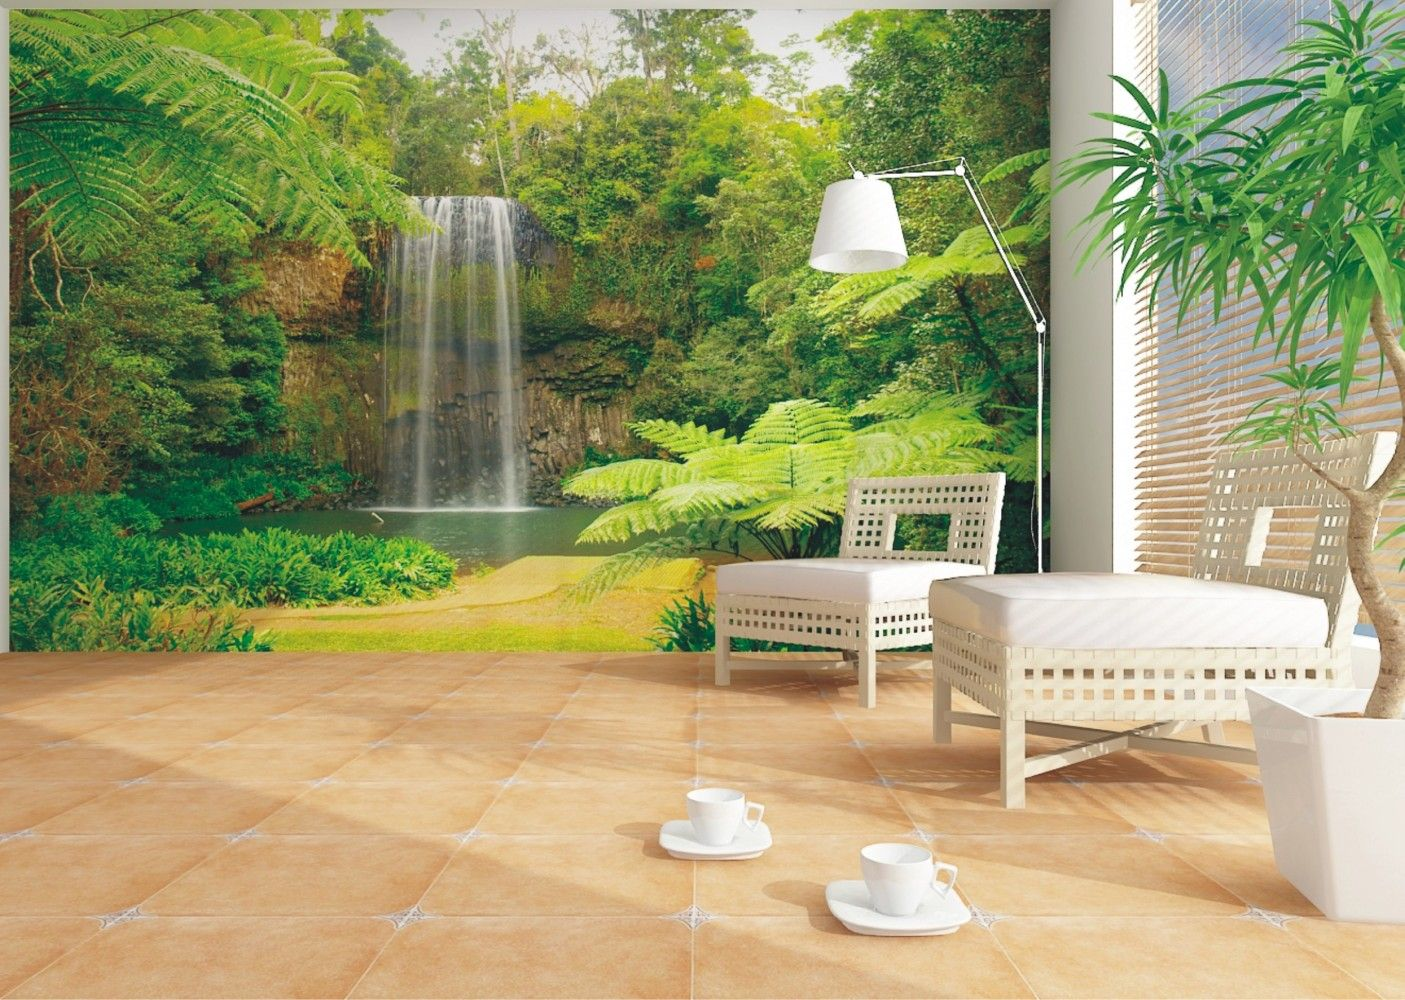 Wall Murals Nature This Wallpaper Photo Brings The Beautiful Look Of Natural Scenery Into Any